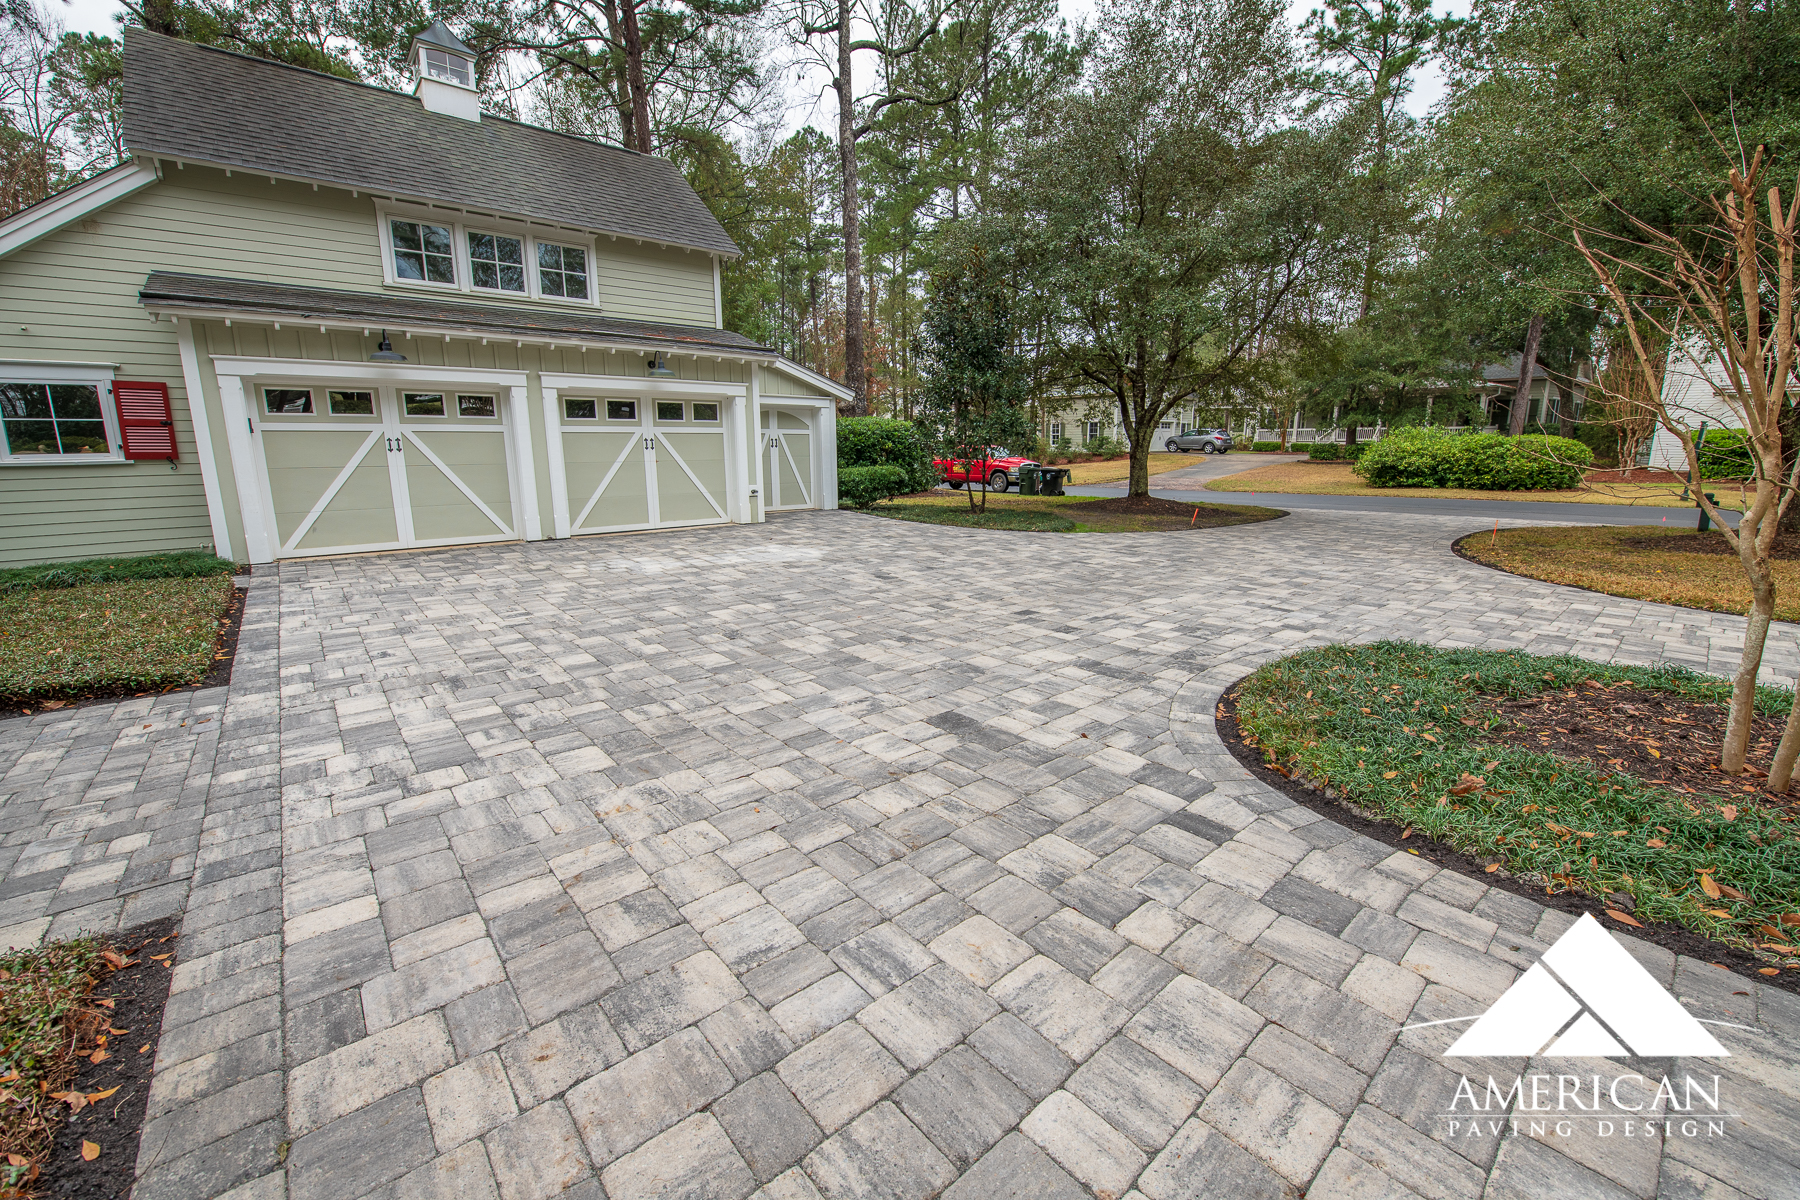 Large Interlocking Paver Driveway Design & Installation